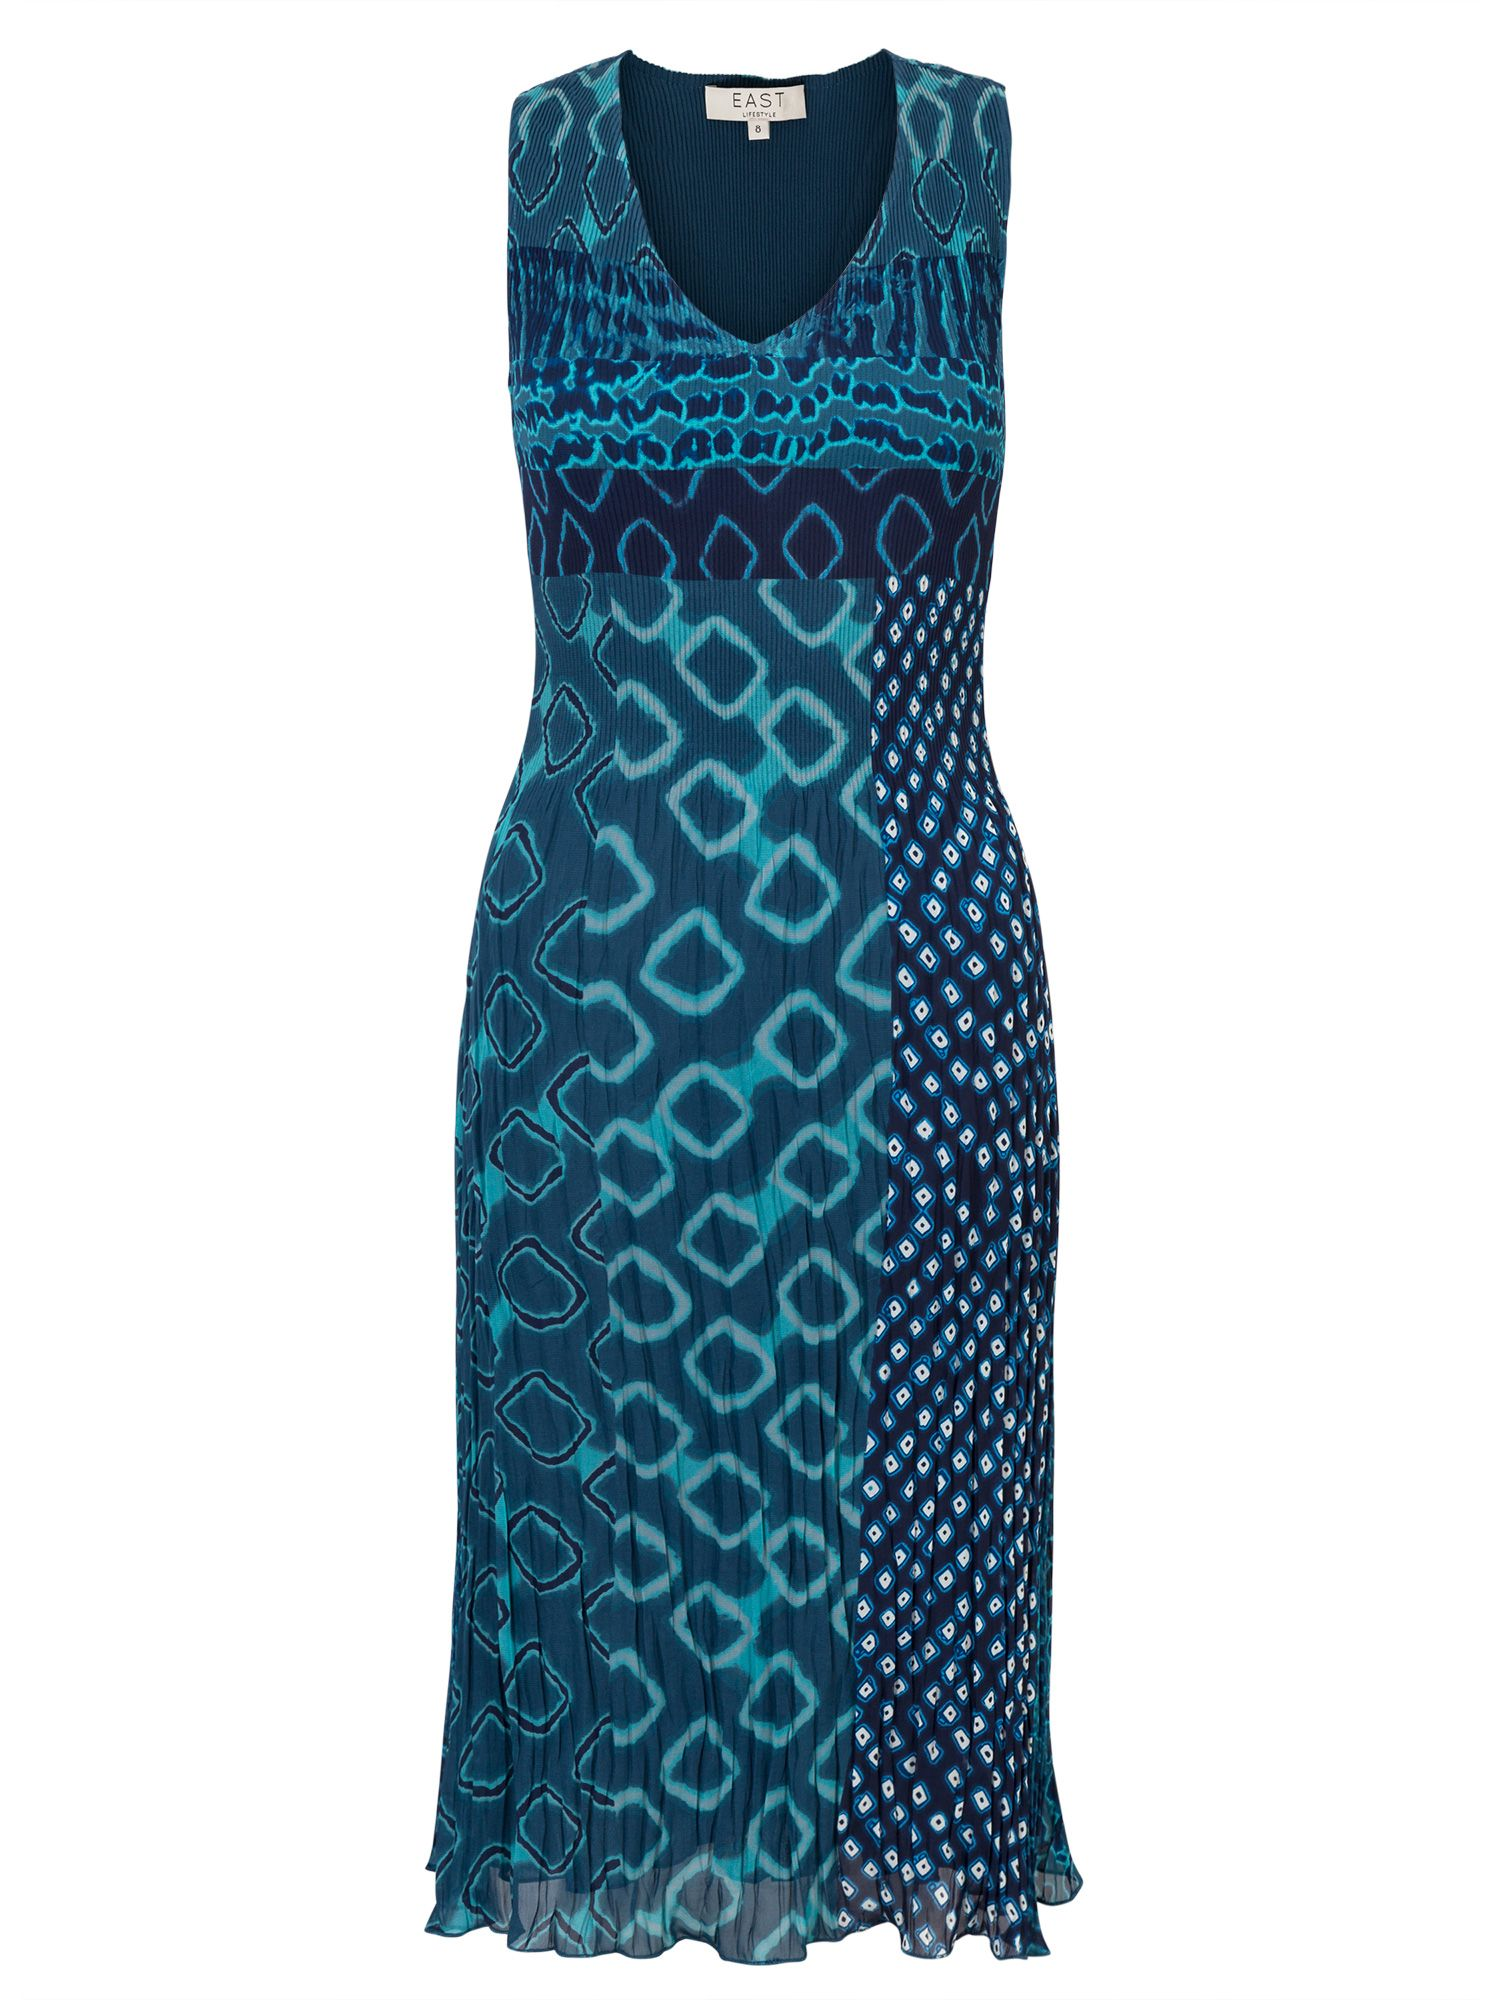 East Paloma Print Pleat Dress, Aqua